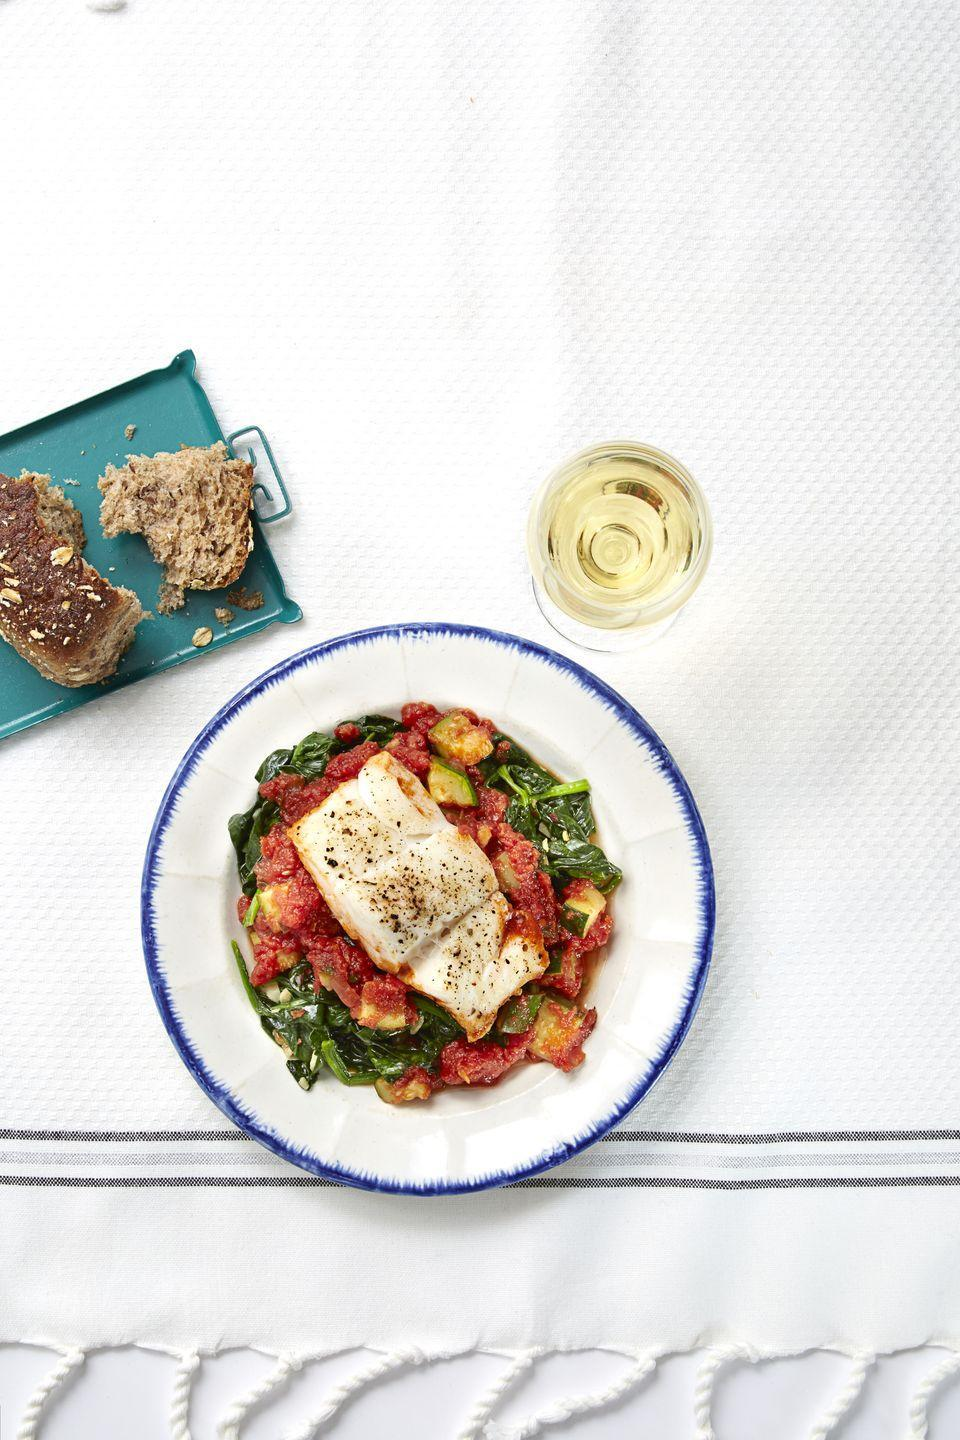 """<p>Check out the nutrition stats for this cod dish — 320 calories, 35 grams protein, 8 grams fat and 8 grams fiber — and feel good (<em>fine, </em>less guilty) about loading your plate with seconds.</p><p><em><a href=""""https://www.goodhousekeeping.com/food-recipes/a32410/mediterranean-cod-recipe-ghk0515/"""" rel=""""nofollow noopener"""" target=""""_blank"""" data-ylk=""""slk:Get the recipe for Mediterranean Cod »"""" class=""""link rapid-noclick-resp"""">Get the recipe for Mediterranean Cod »</a></em> </p>"""